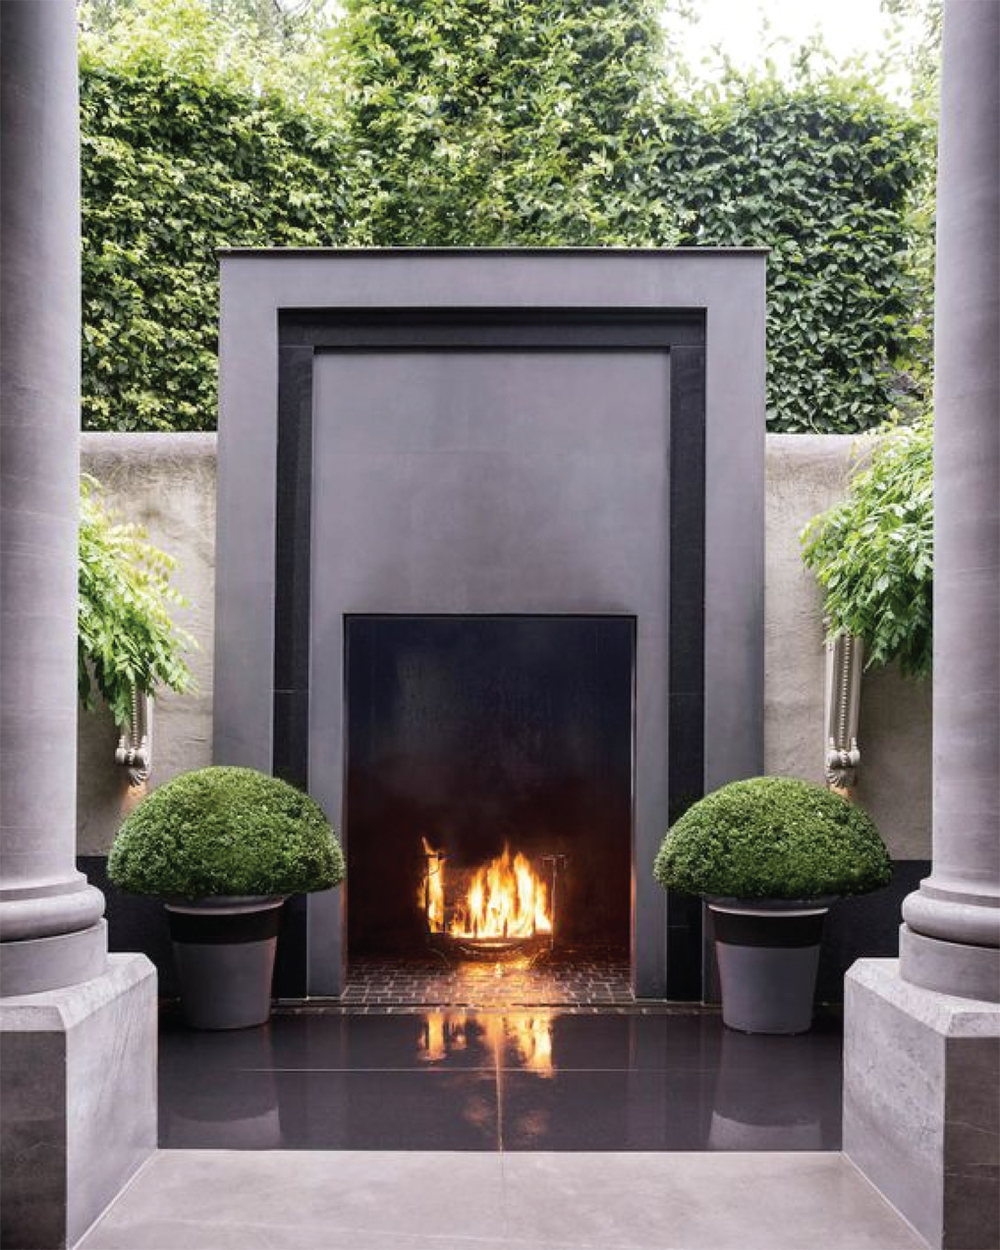 outdoor fireplace has perfect symmetry